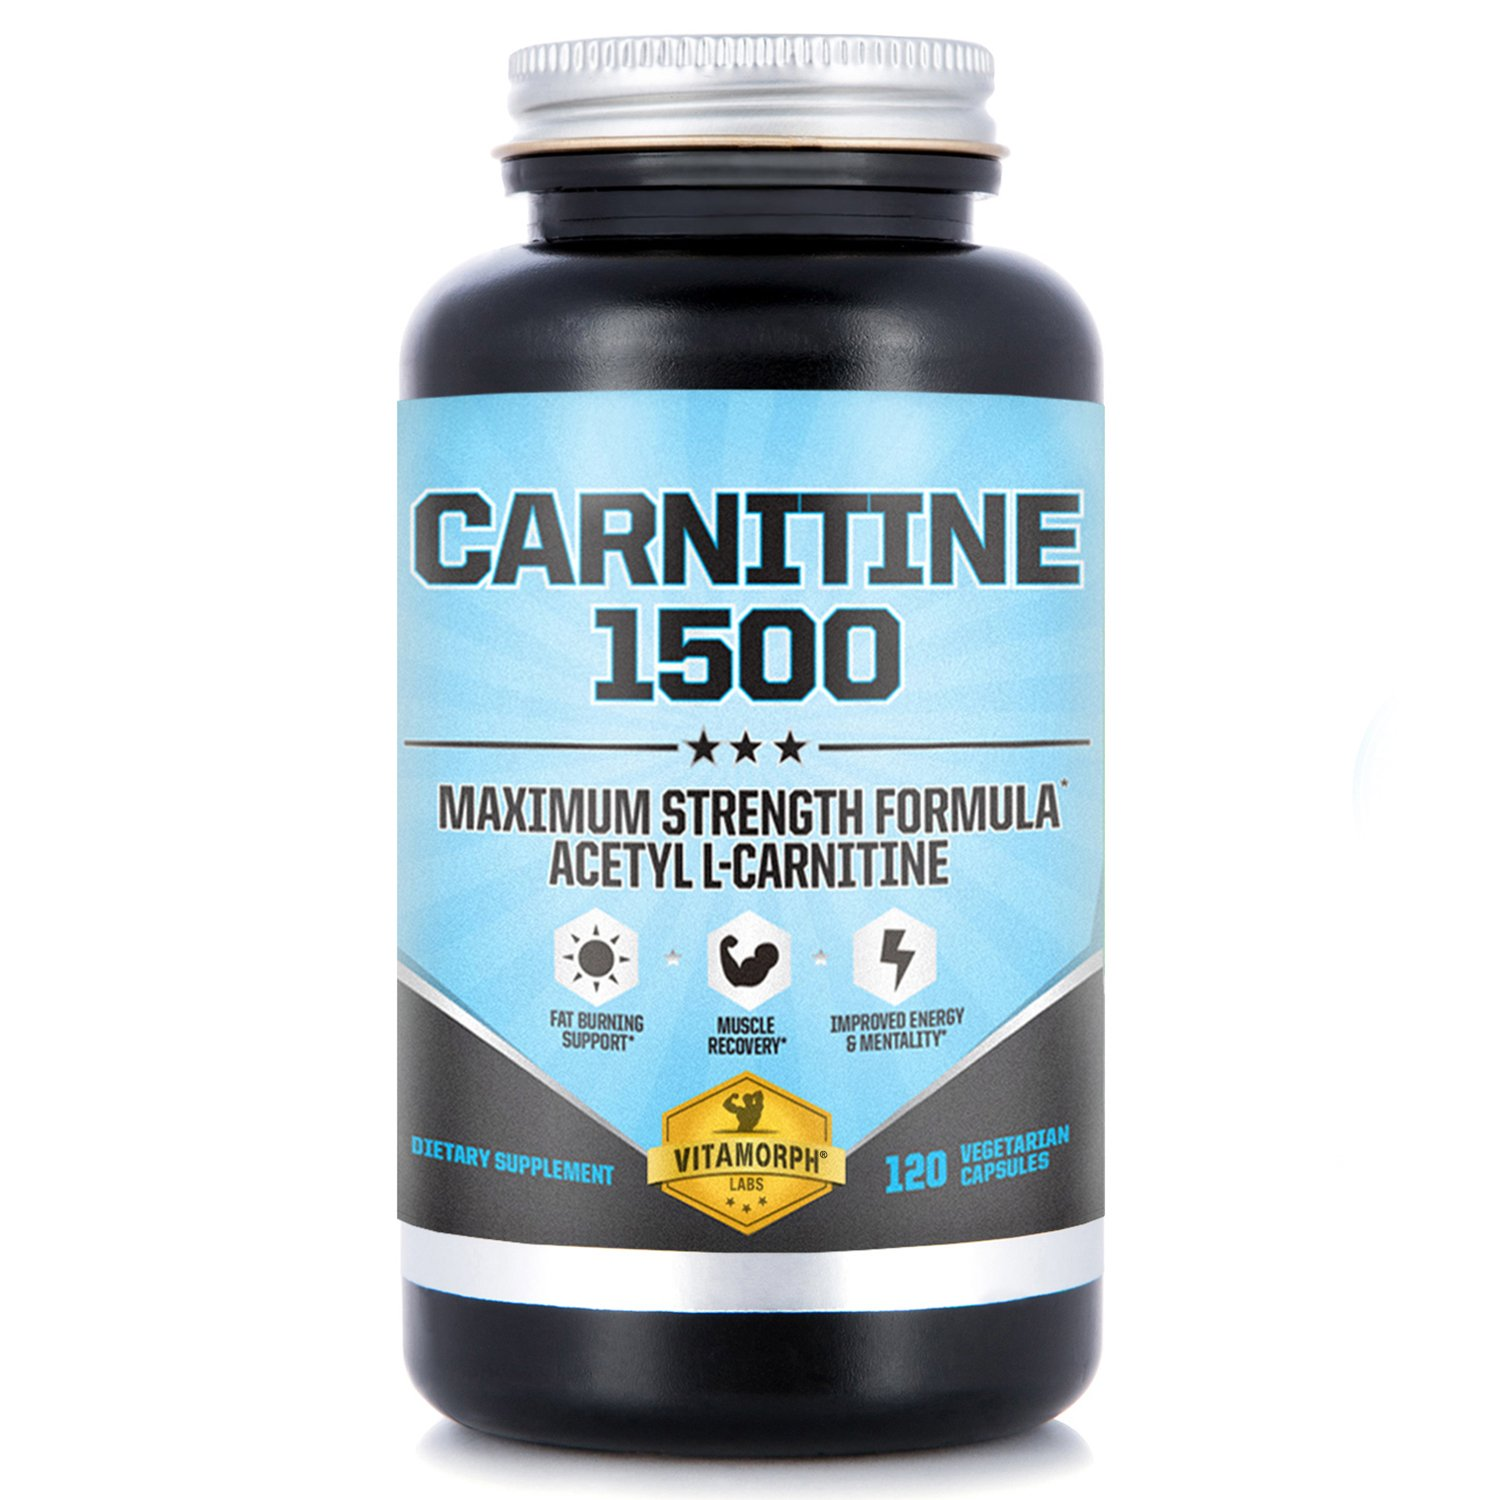 Carnitine 1500 - Acetyl L-Carnitine 1500mg Maximum Strength Carnitine Supplement - Supports Energy, Memory, Focus and Weight Loss Management by Vitamorph Labs - 120 Vegetarian Capsules by Vitamorph Labs